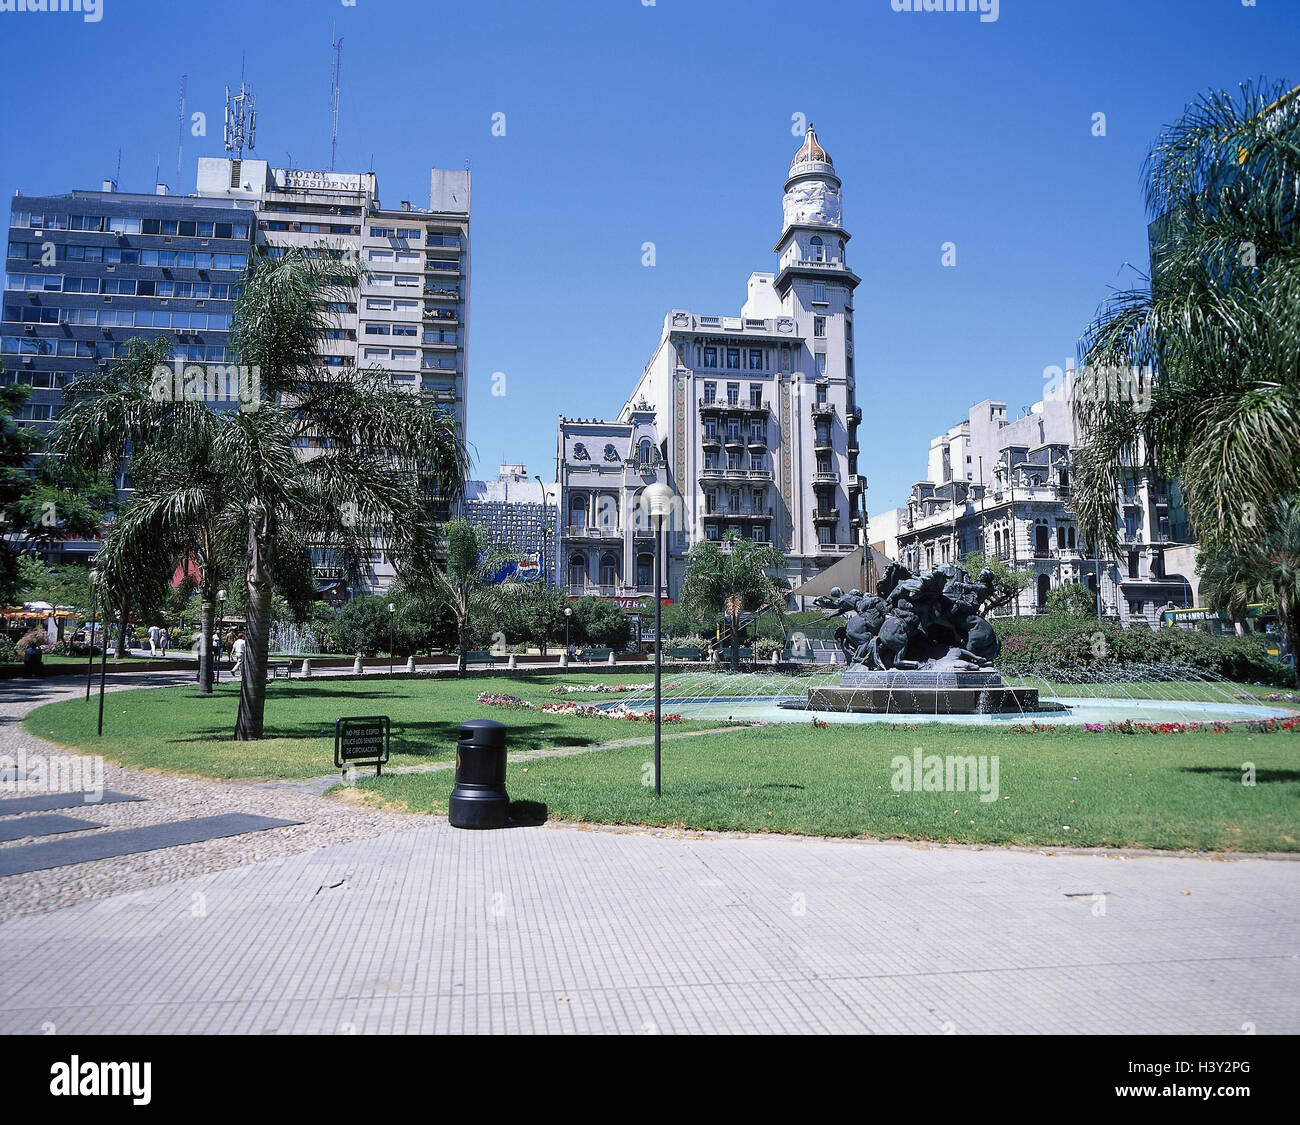 Uruguay, Montevideo, town view, plaza Fabini, well, South America, capital, town, space, park, fountain Stock Photo